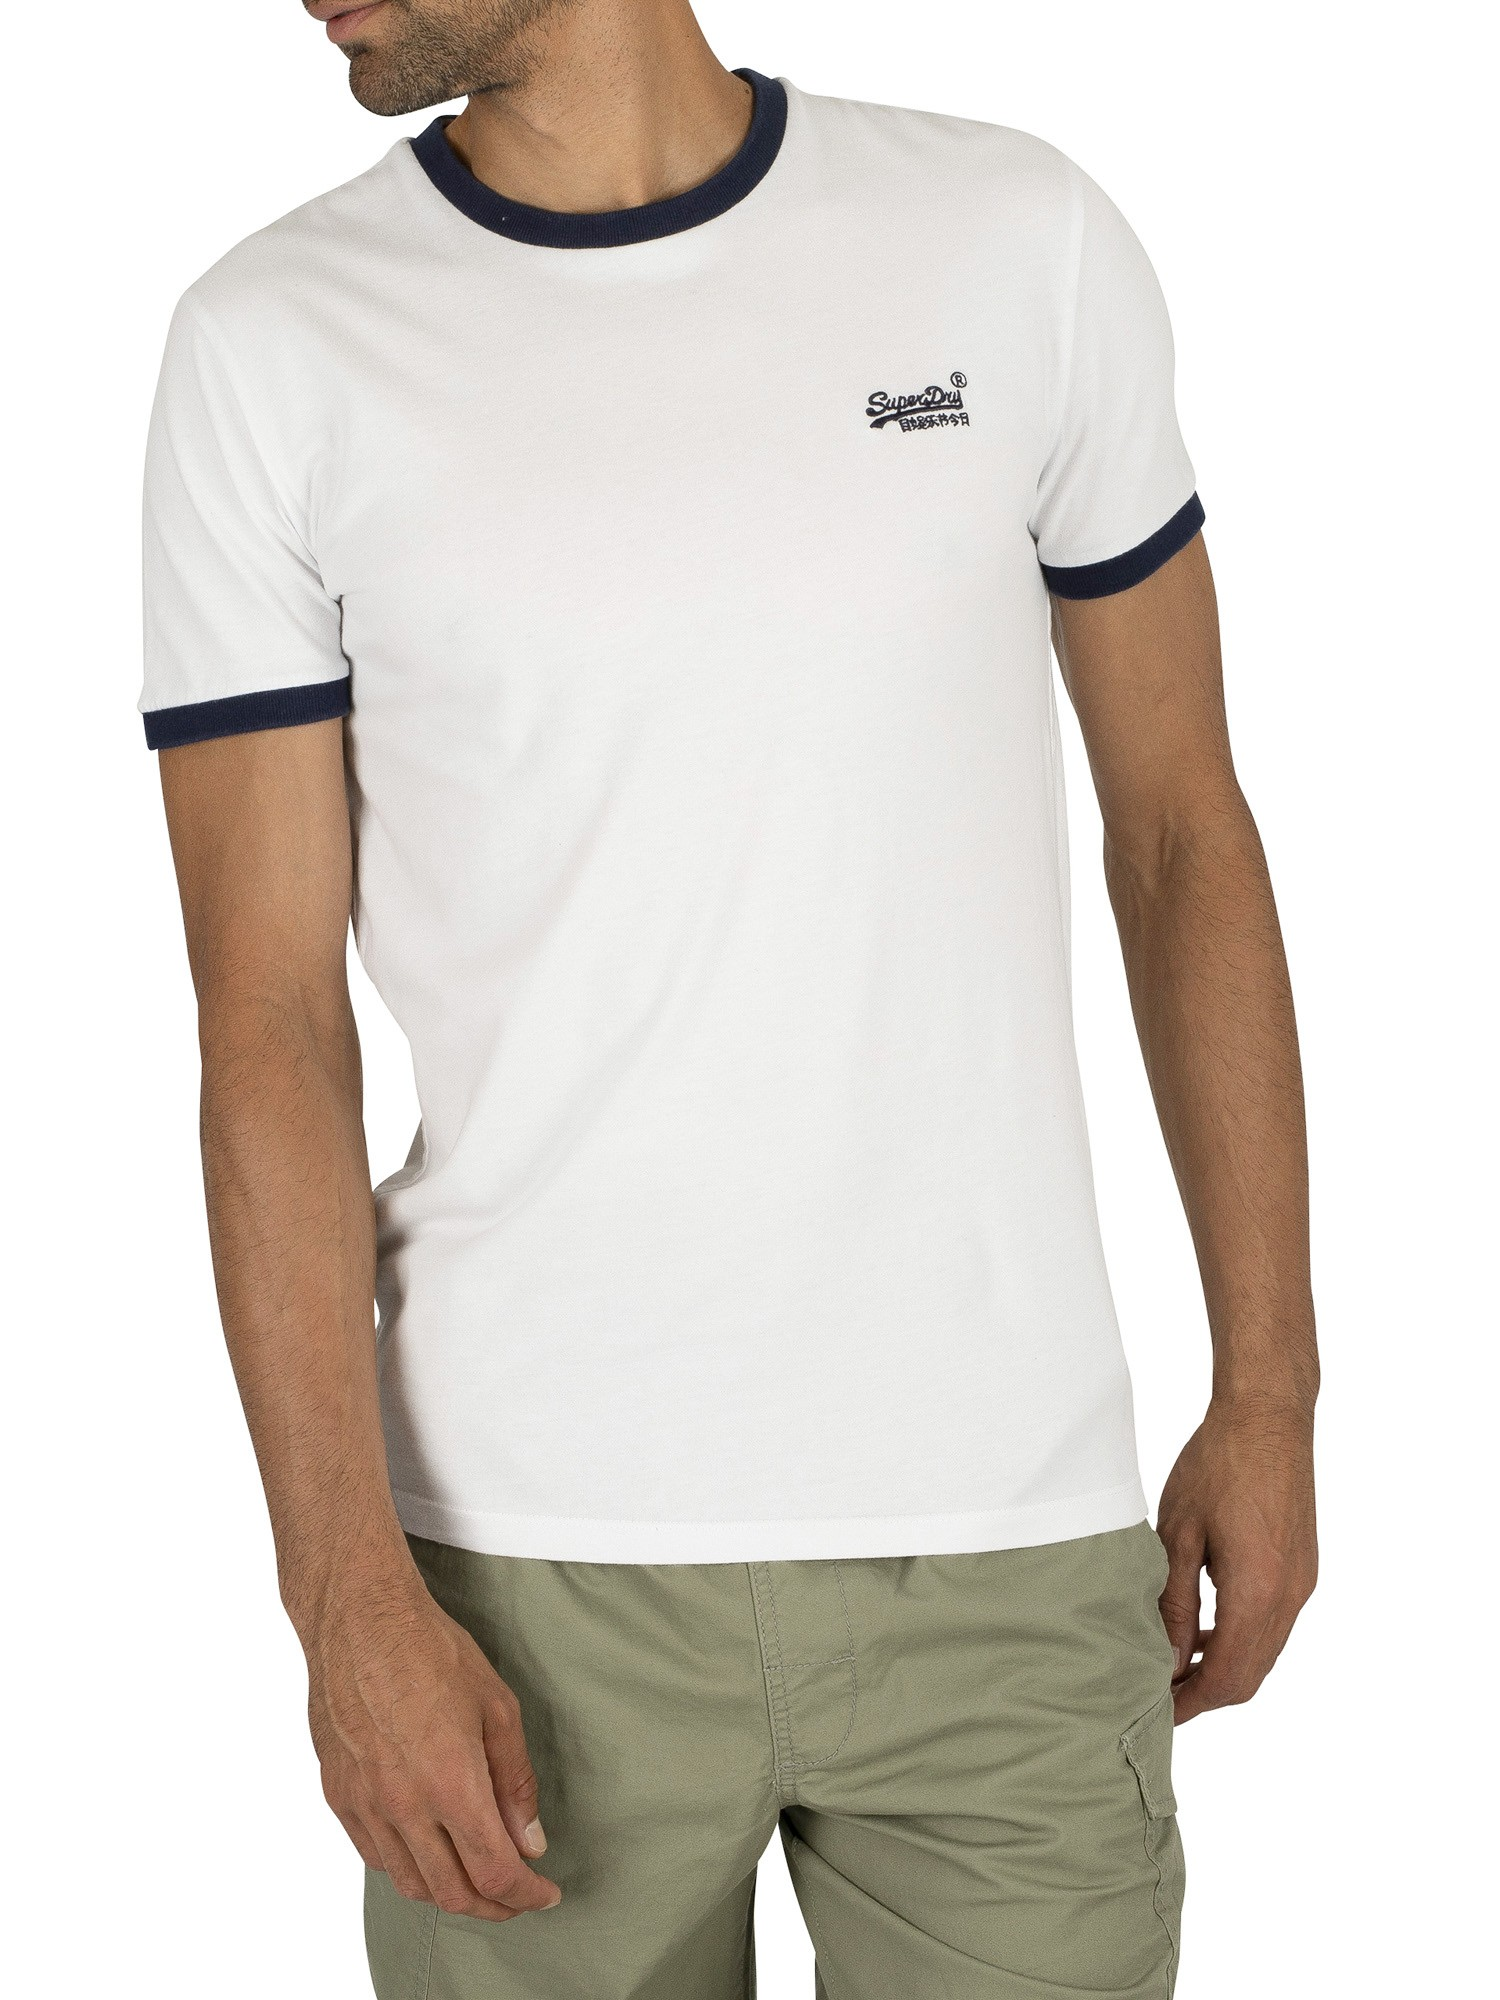 Superdry Orange Label Cali Stack T-Shirt - Optic